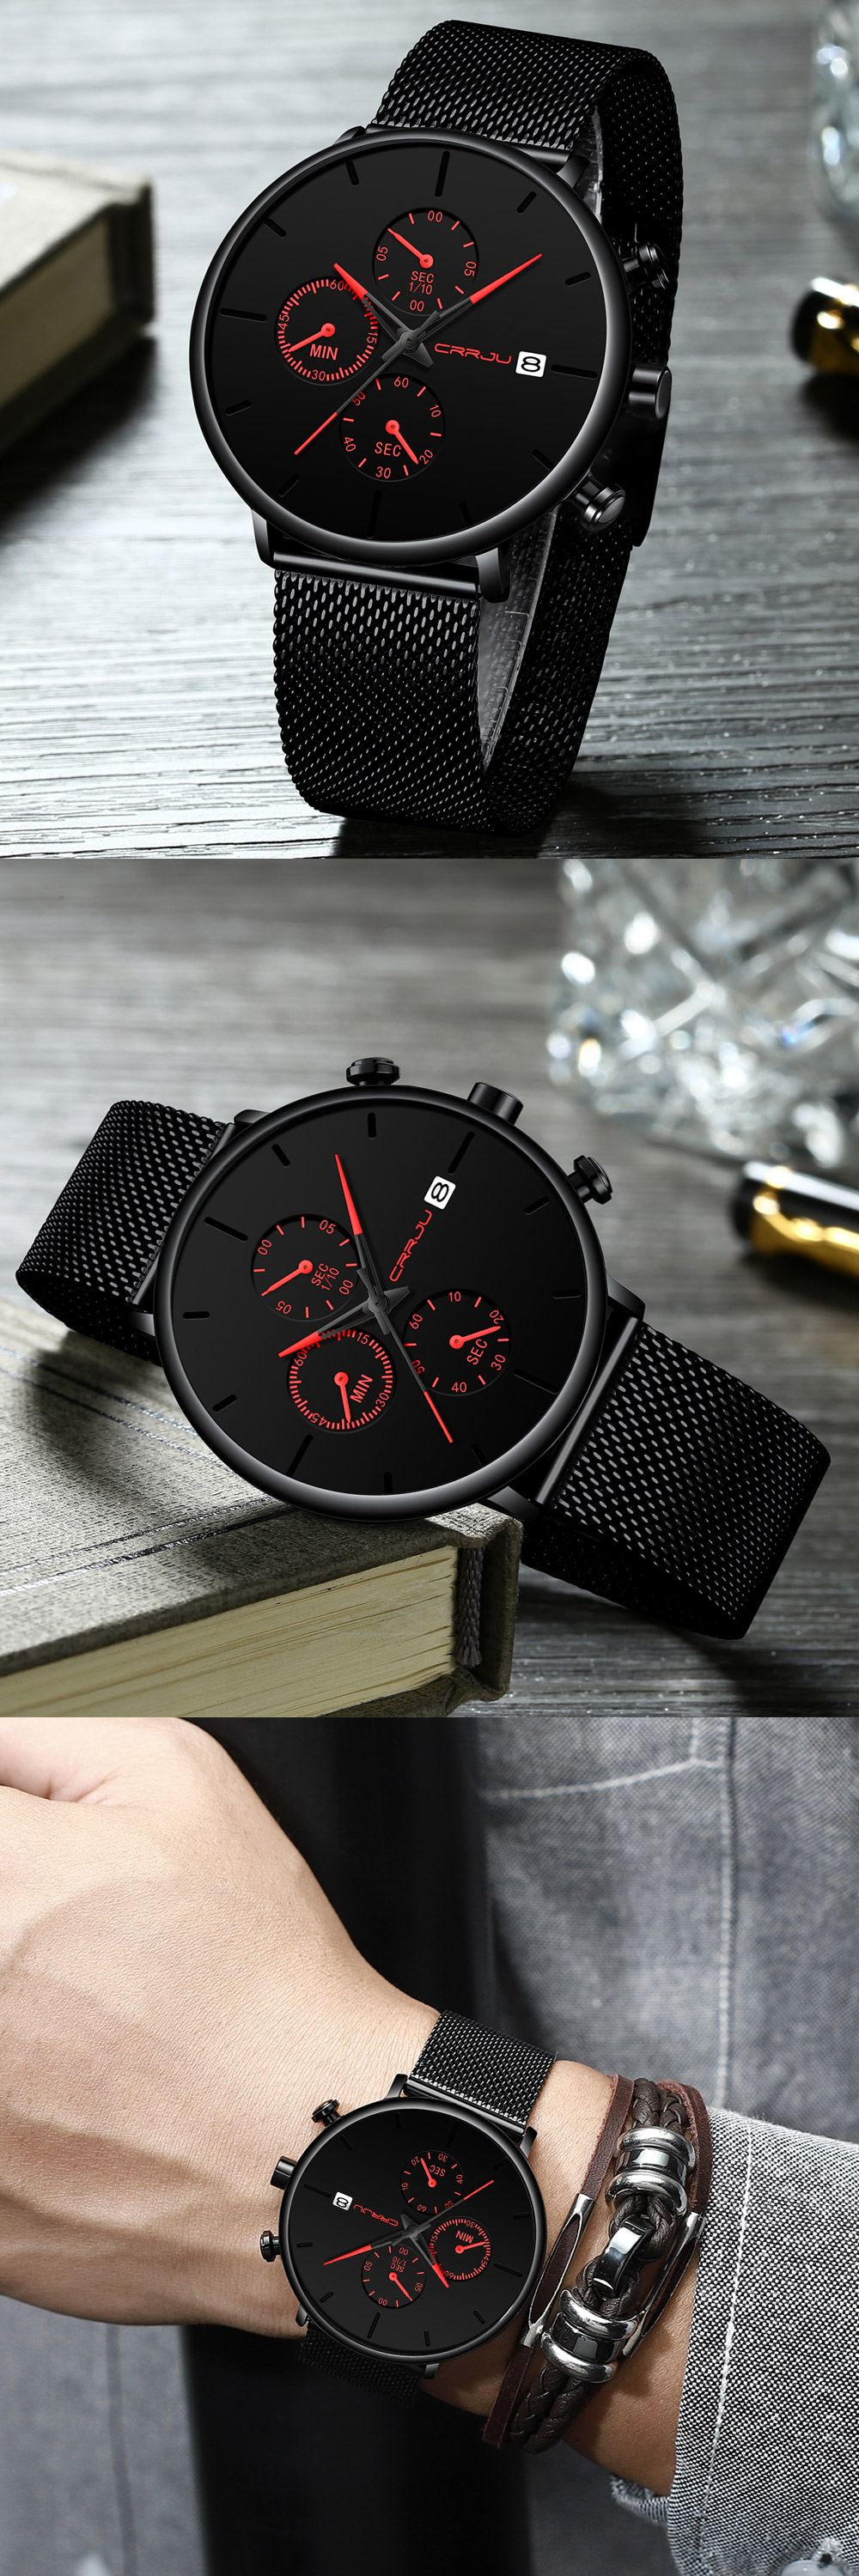 Mens Women StopWatches CRRJU Unique Design Luxury Sport Wrist Watch Stainless Steel Mesh Strap Men's Fashion Casual Date Watches